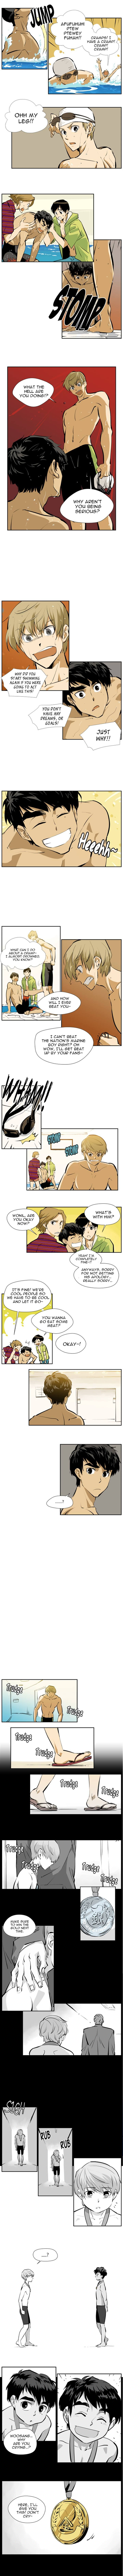 No Breathing 3 Page 2